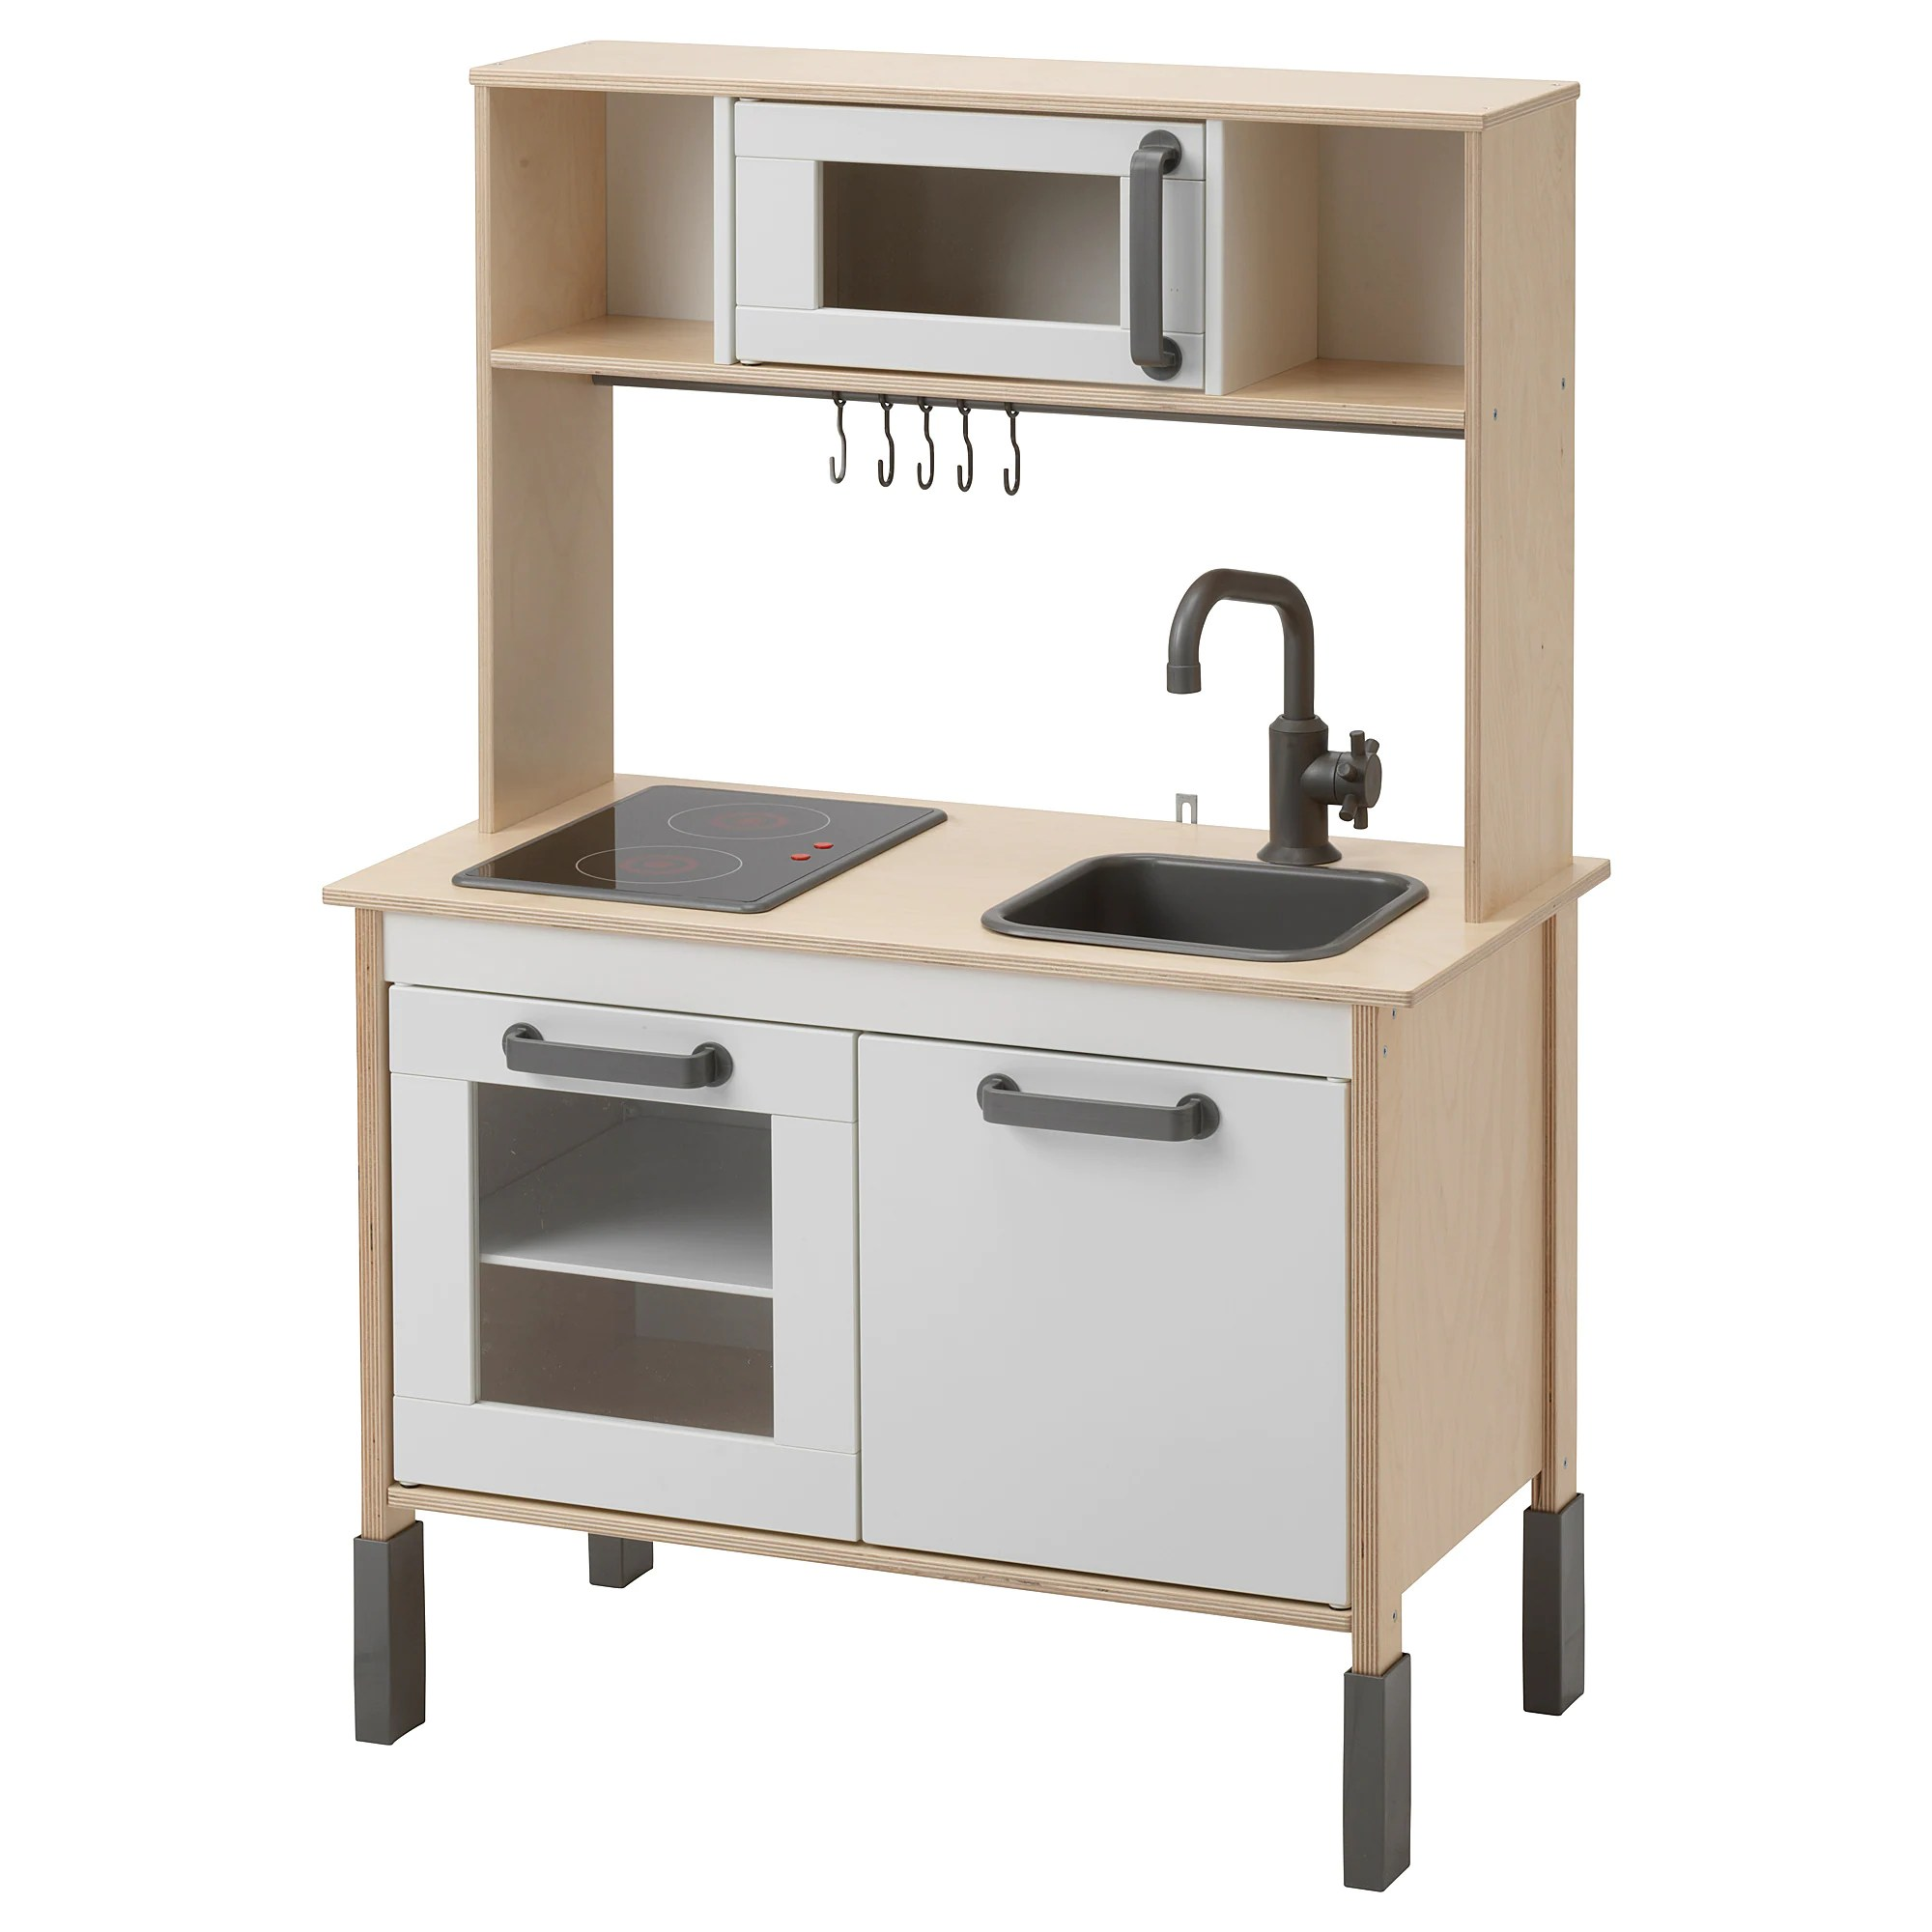 Ikea San Diego Hours Duktig Play Kitchen